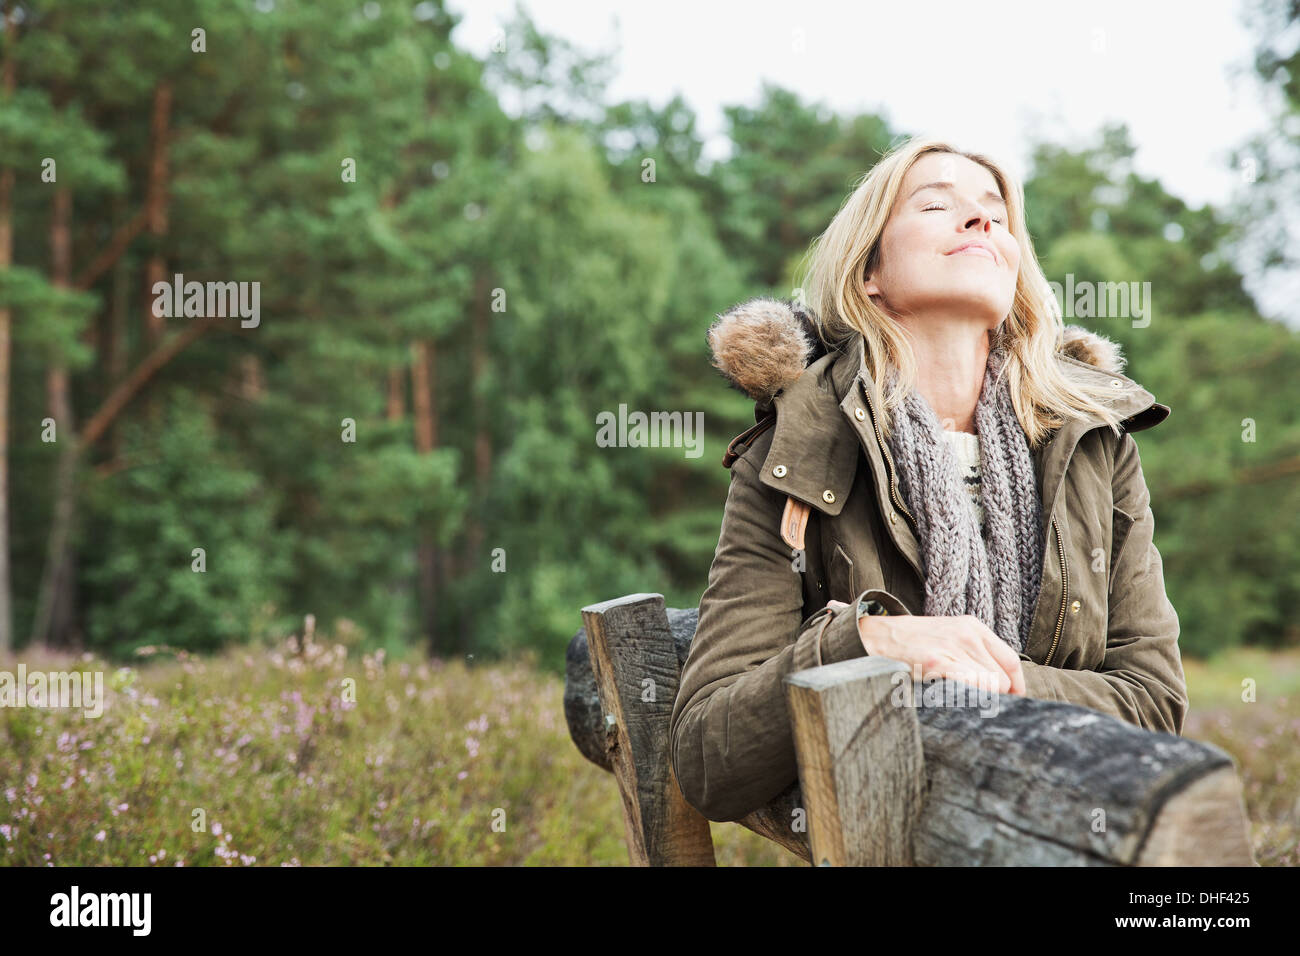 Mid adult woman on bench with eyes closed - Stock Image